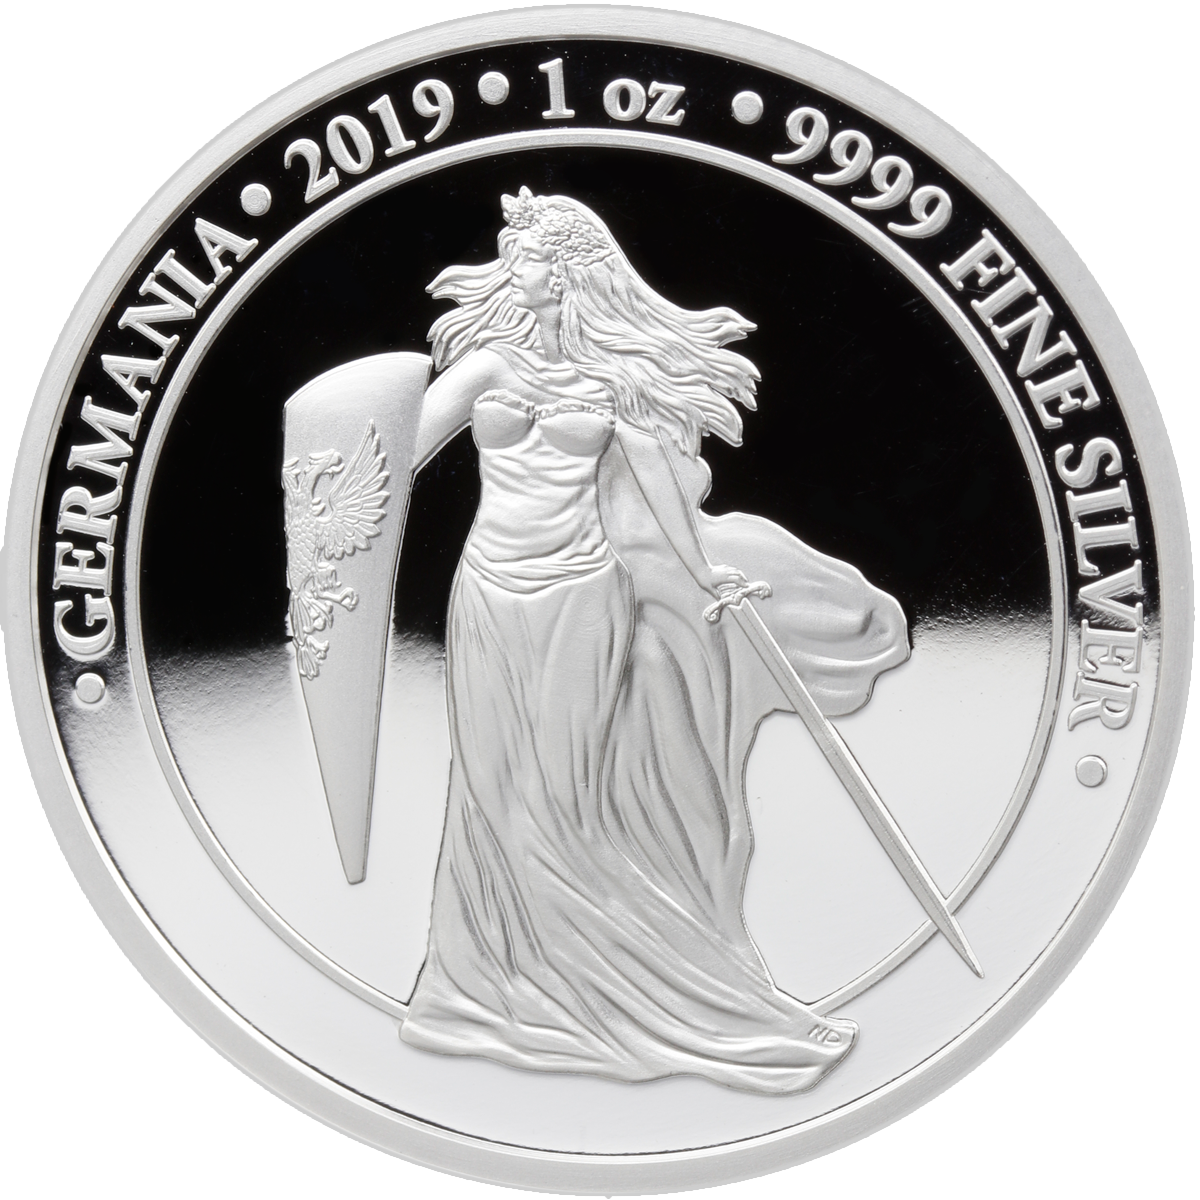 2019 Germania 1 oz Silver Proof